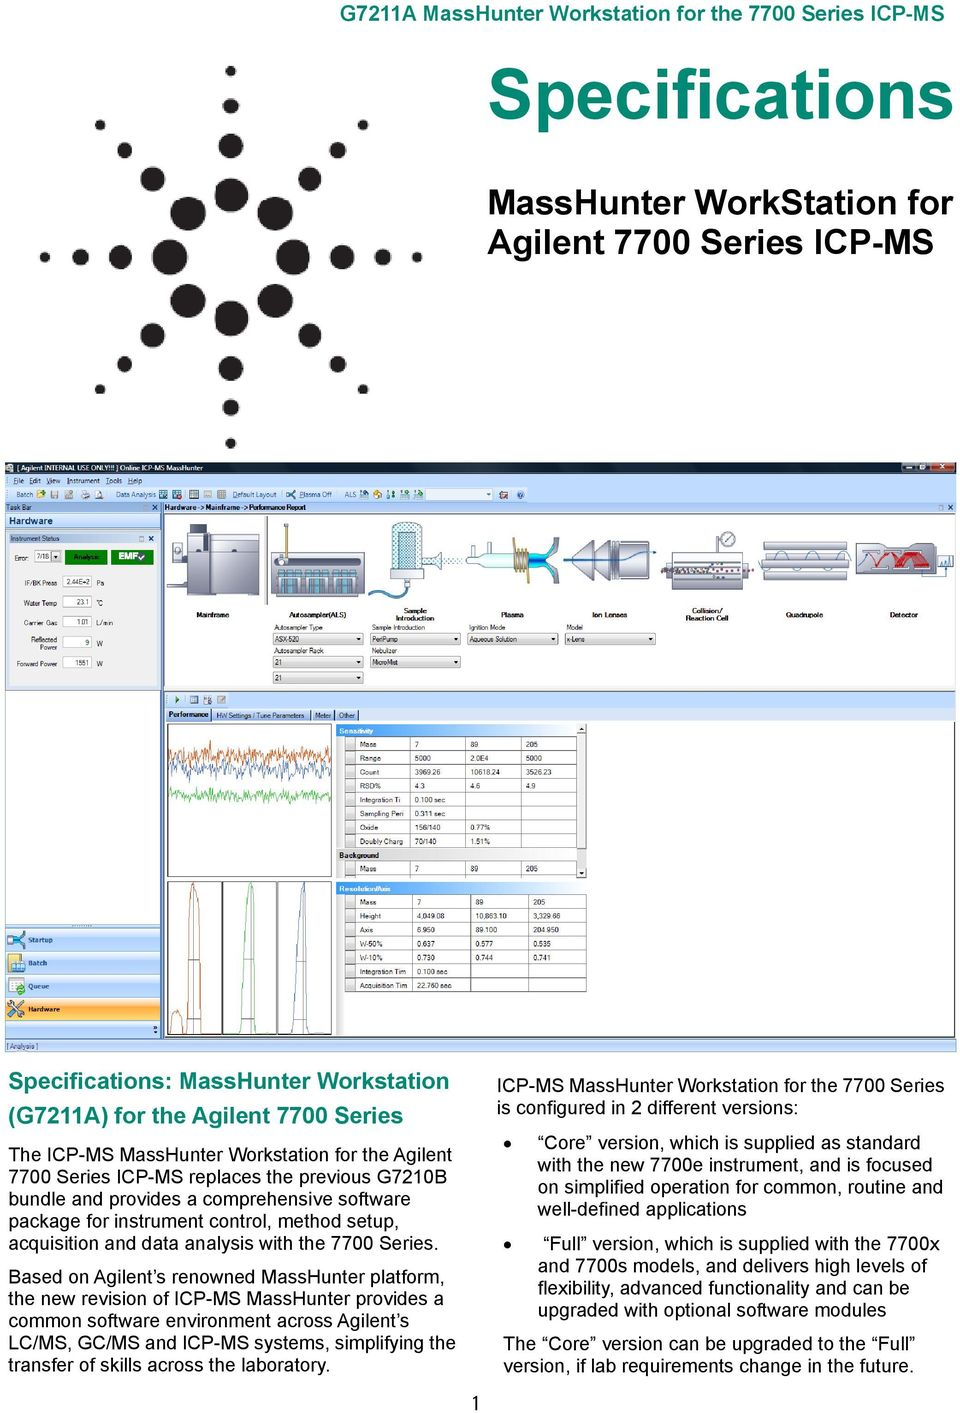 Based on Agilent s renowned MassHunter platform, the new revision of ICP-MS MassHunter provides a common software environment across Agilent s LC/MS, GC/MS and ICP-MS systems, simplifying the